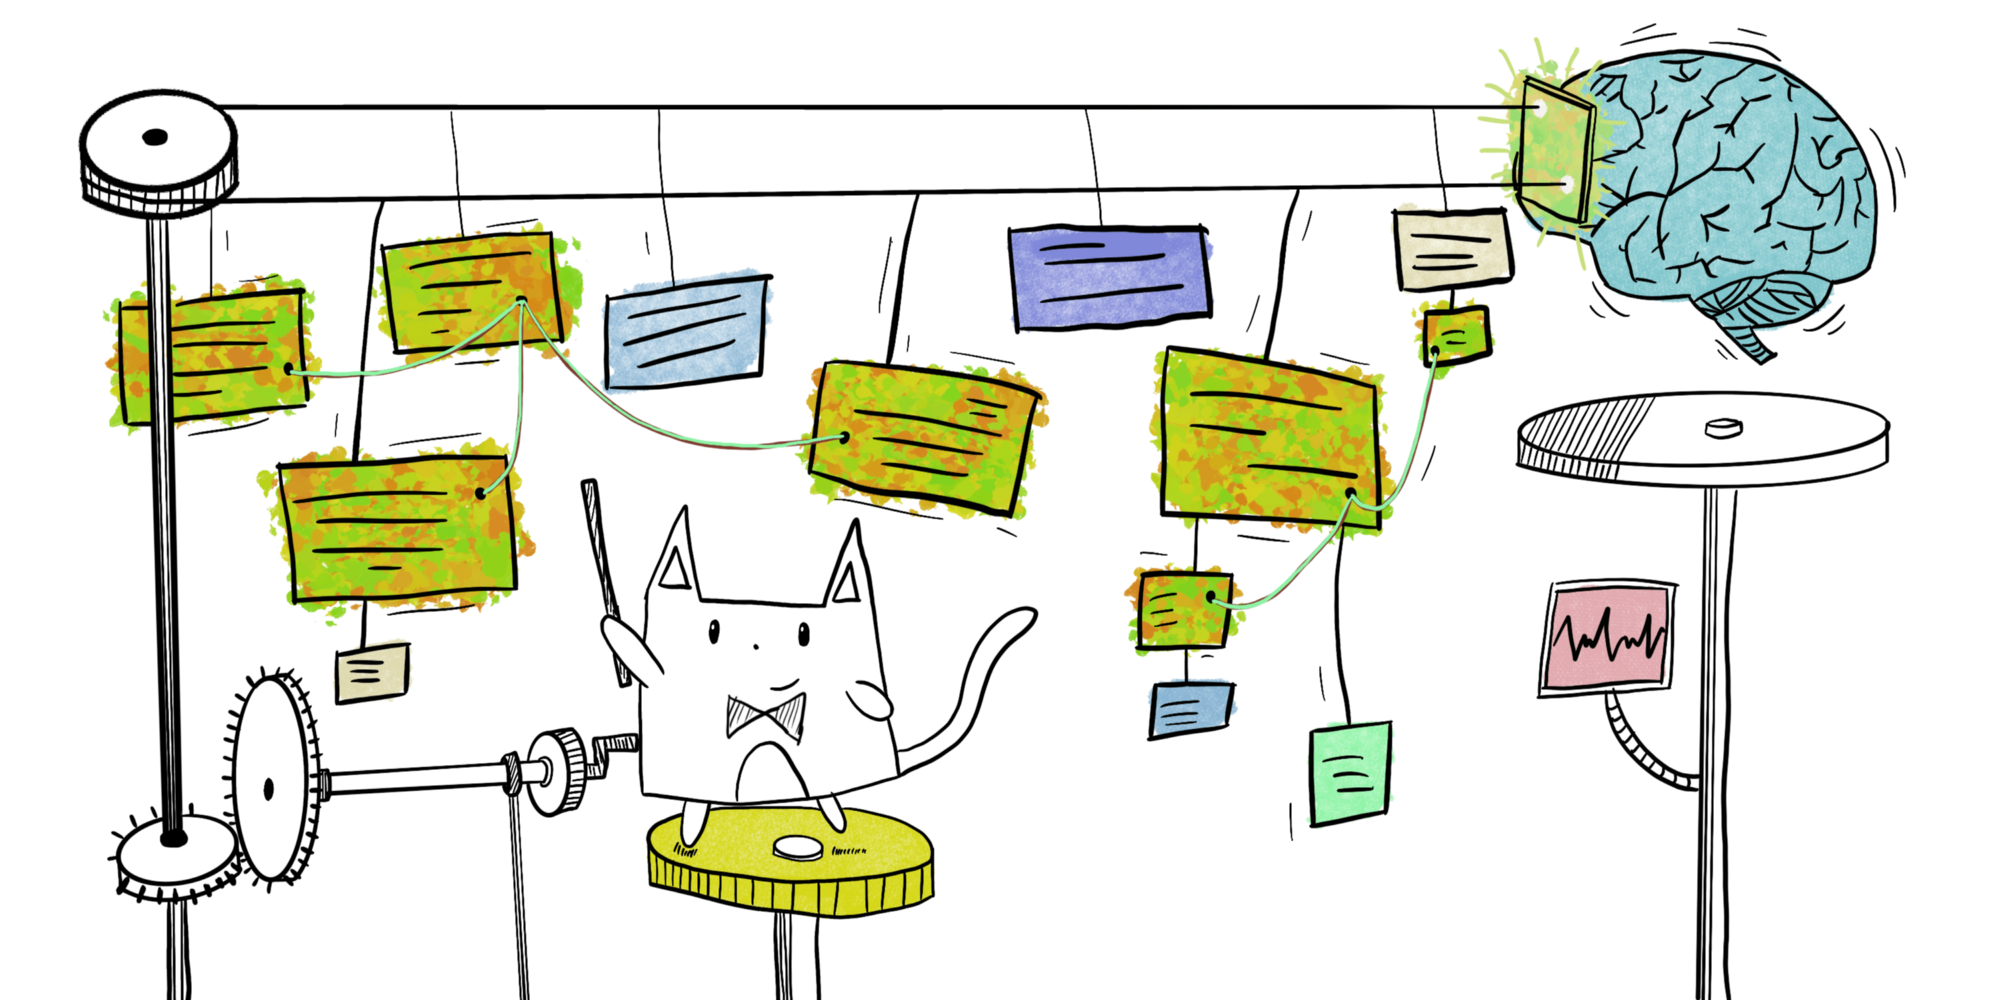 Cat making connections with string between notes hung from a conveyor belt system exiting and entering a brain through a door